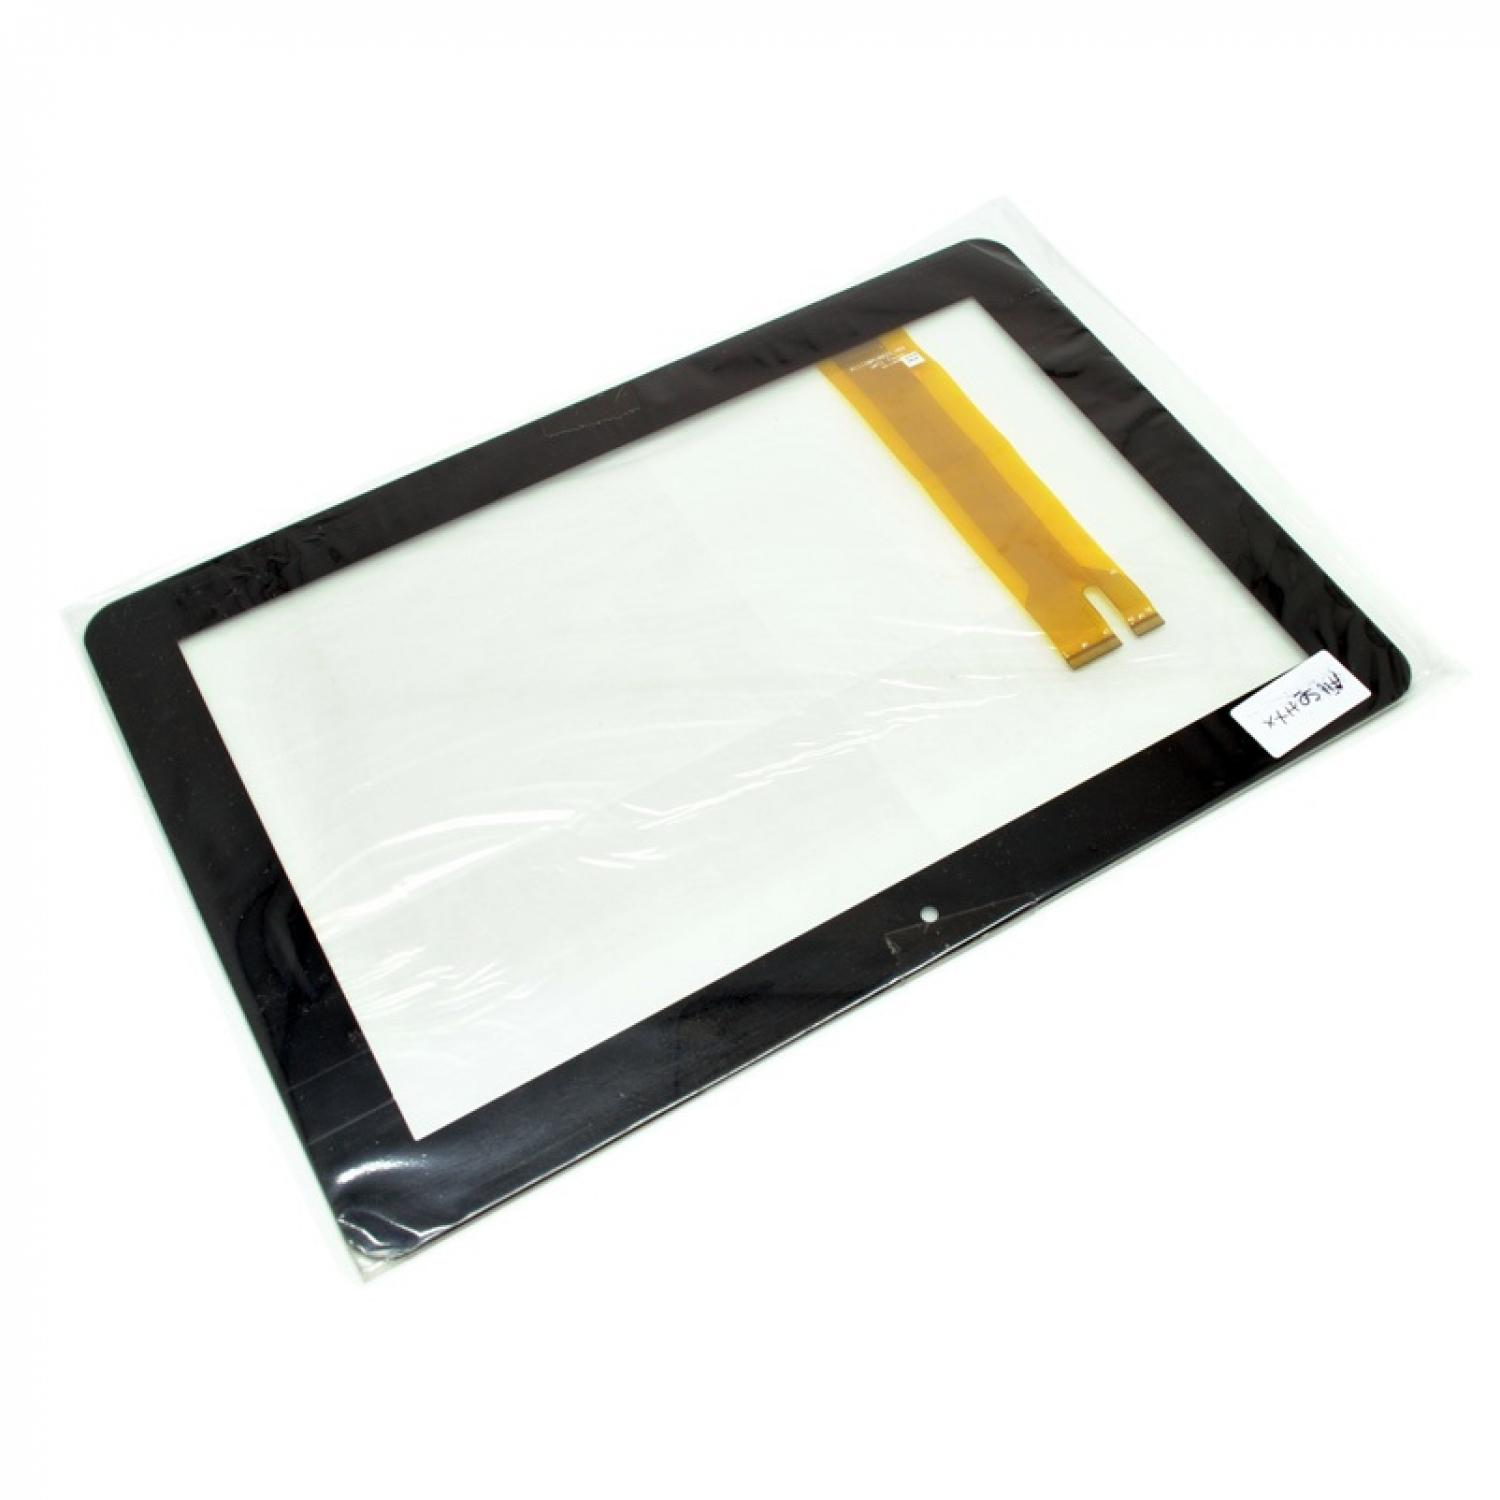 Touchscreen Panel Replacement for Ainol